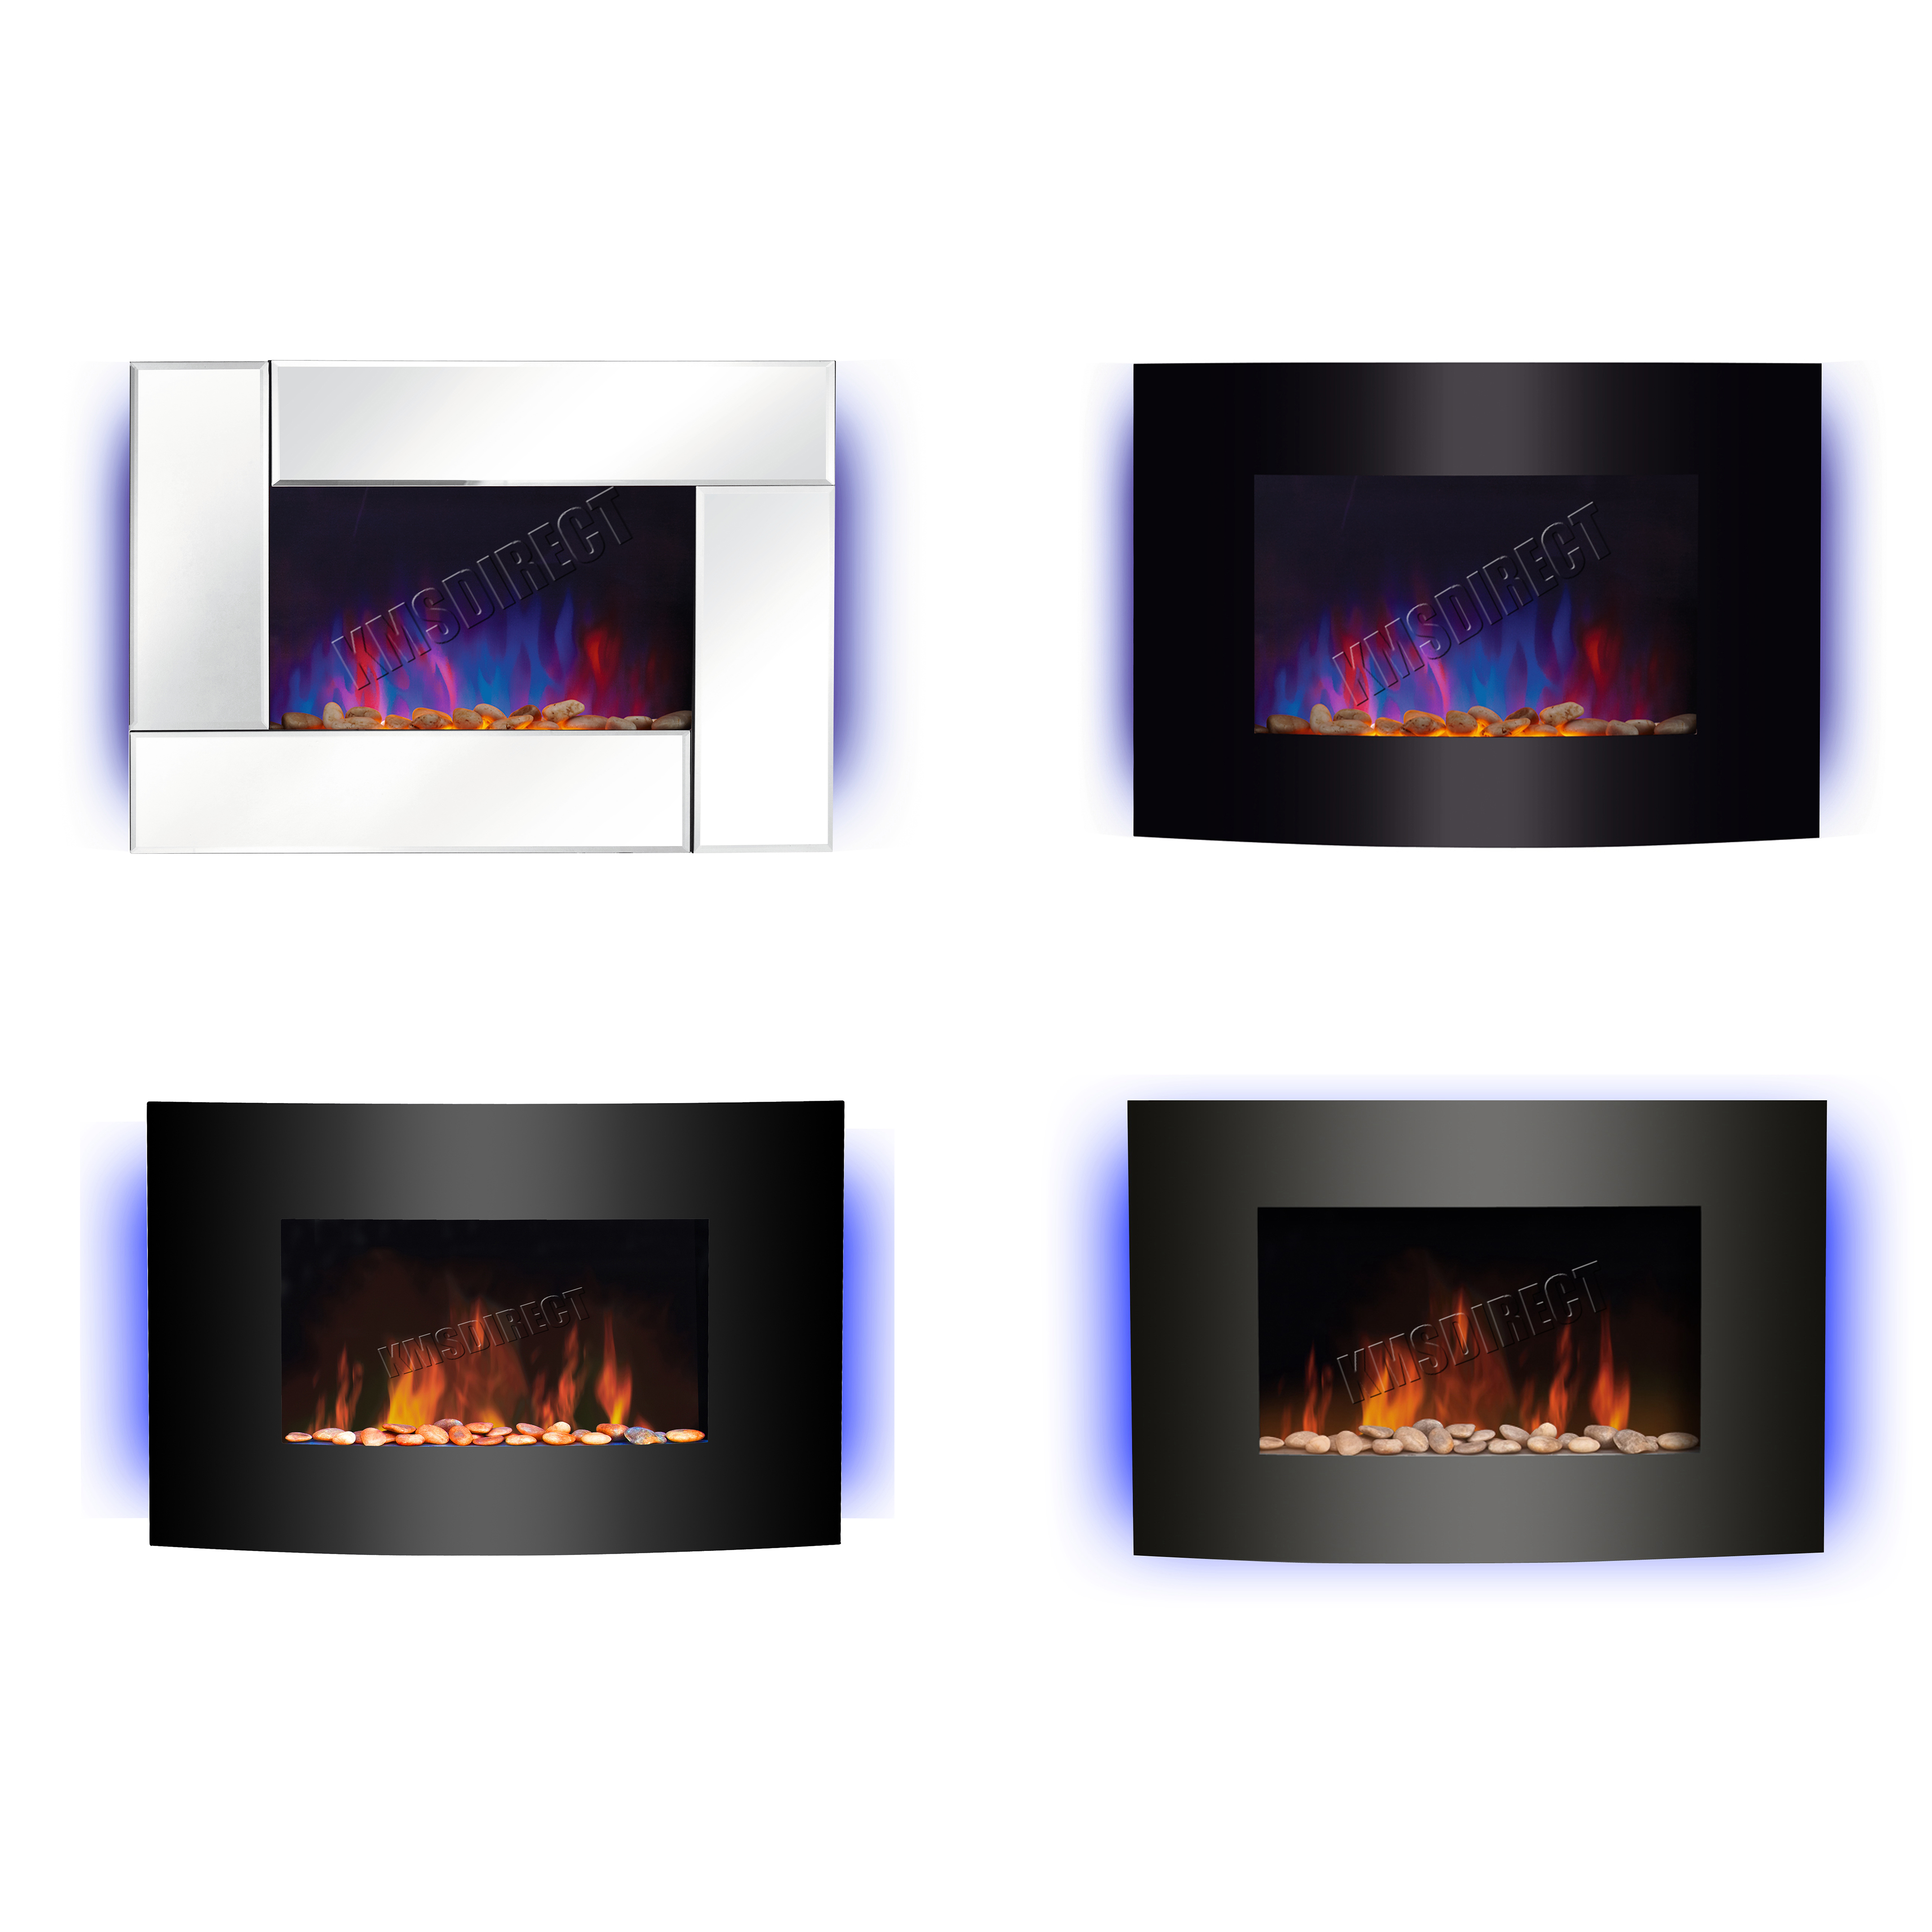 Wall Mounted Electric Fireplace Glass Heater Fire Remote Control Led Backlit New Ebay